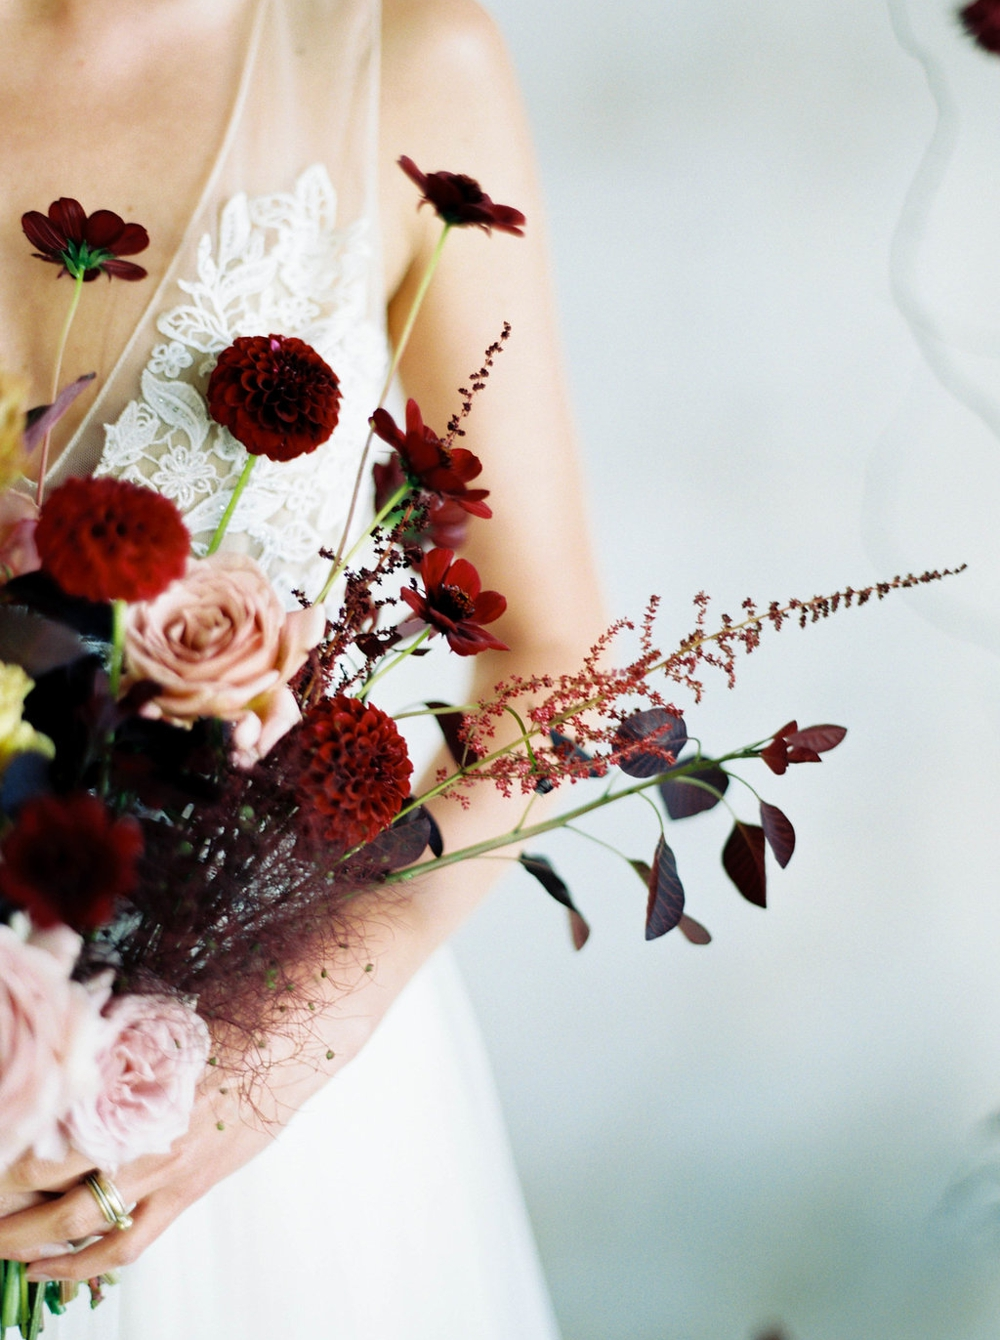 chopin-editorial-session-seattle-floral-design 7.jpg